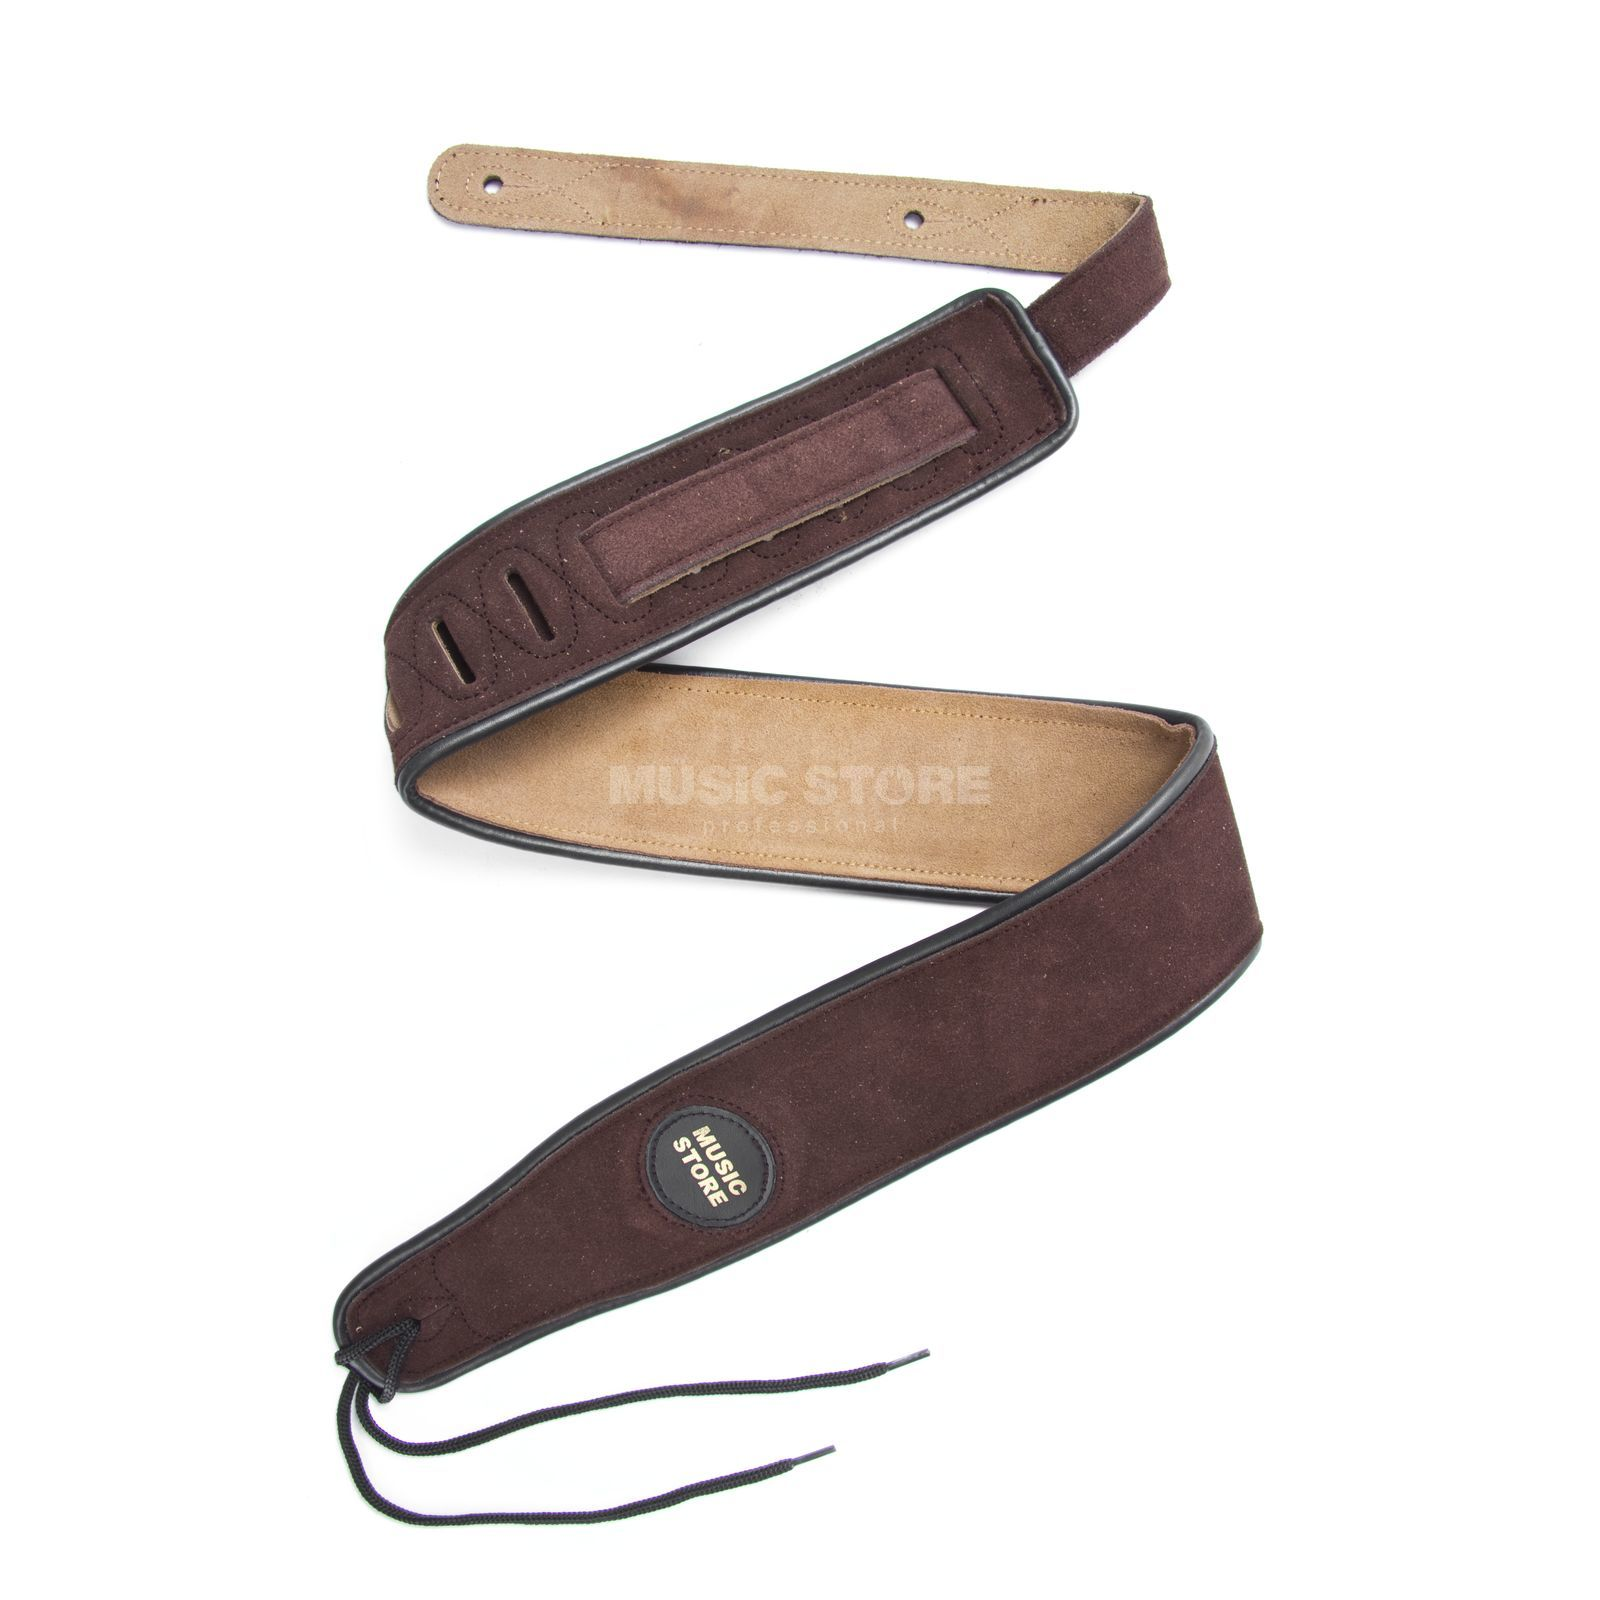 MUSIC STORE Guitar Strap 801 F Brown Suede - Heavy Version Produktbillede